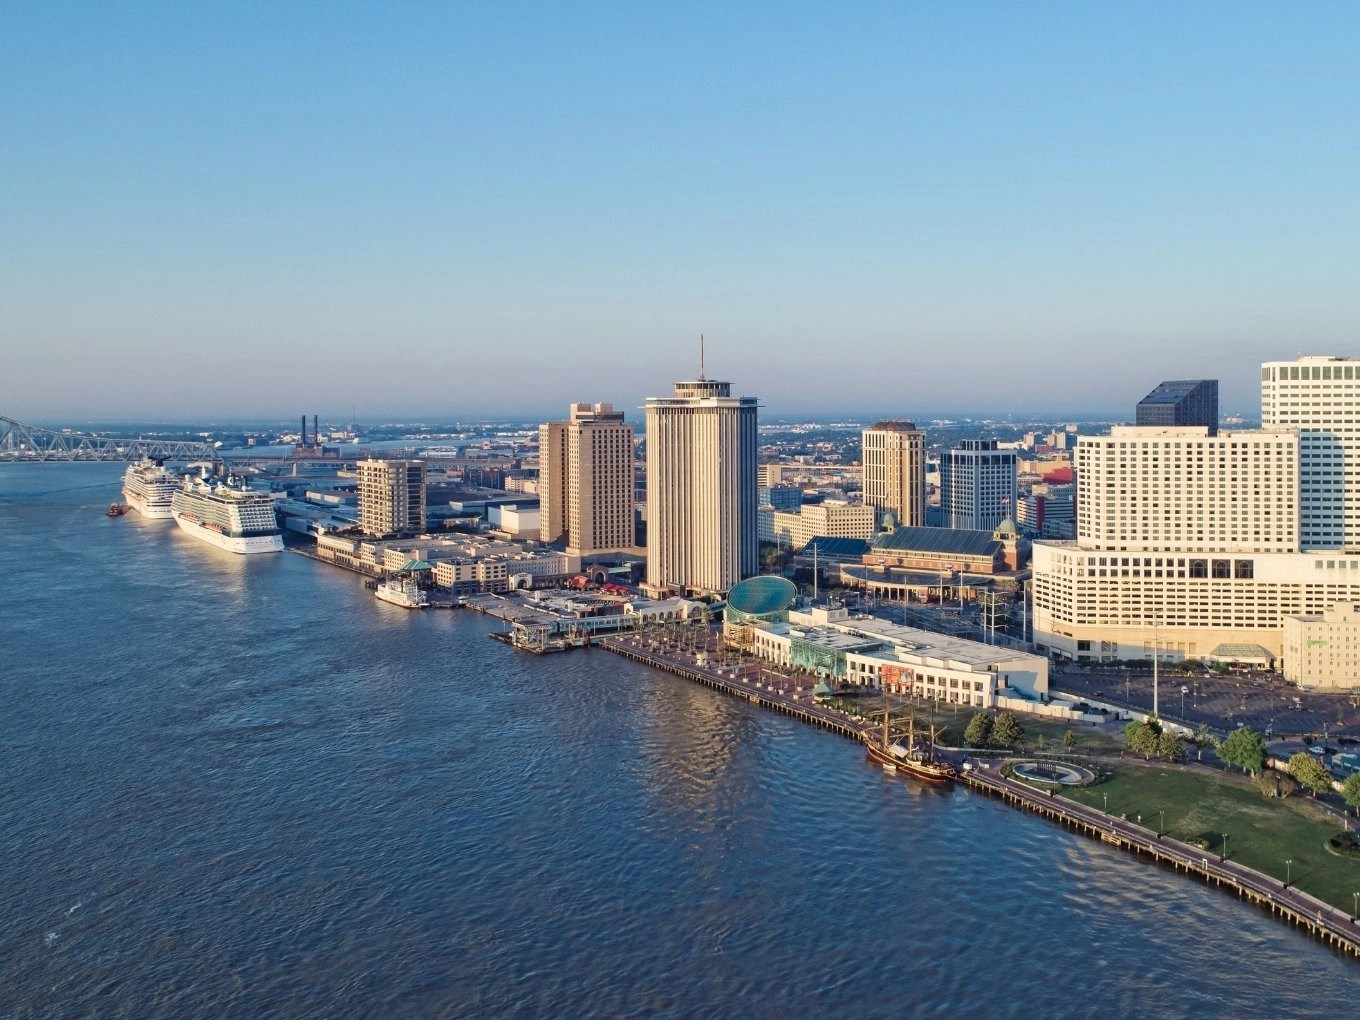 Planning Your Steamboat Natchez River Cruise